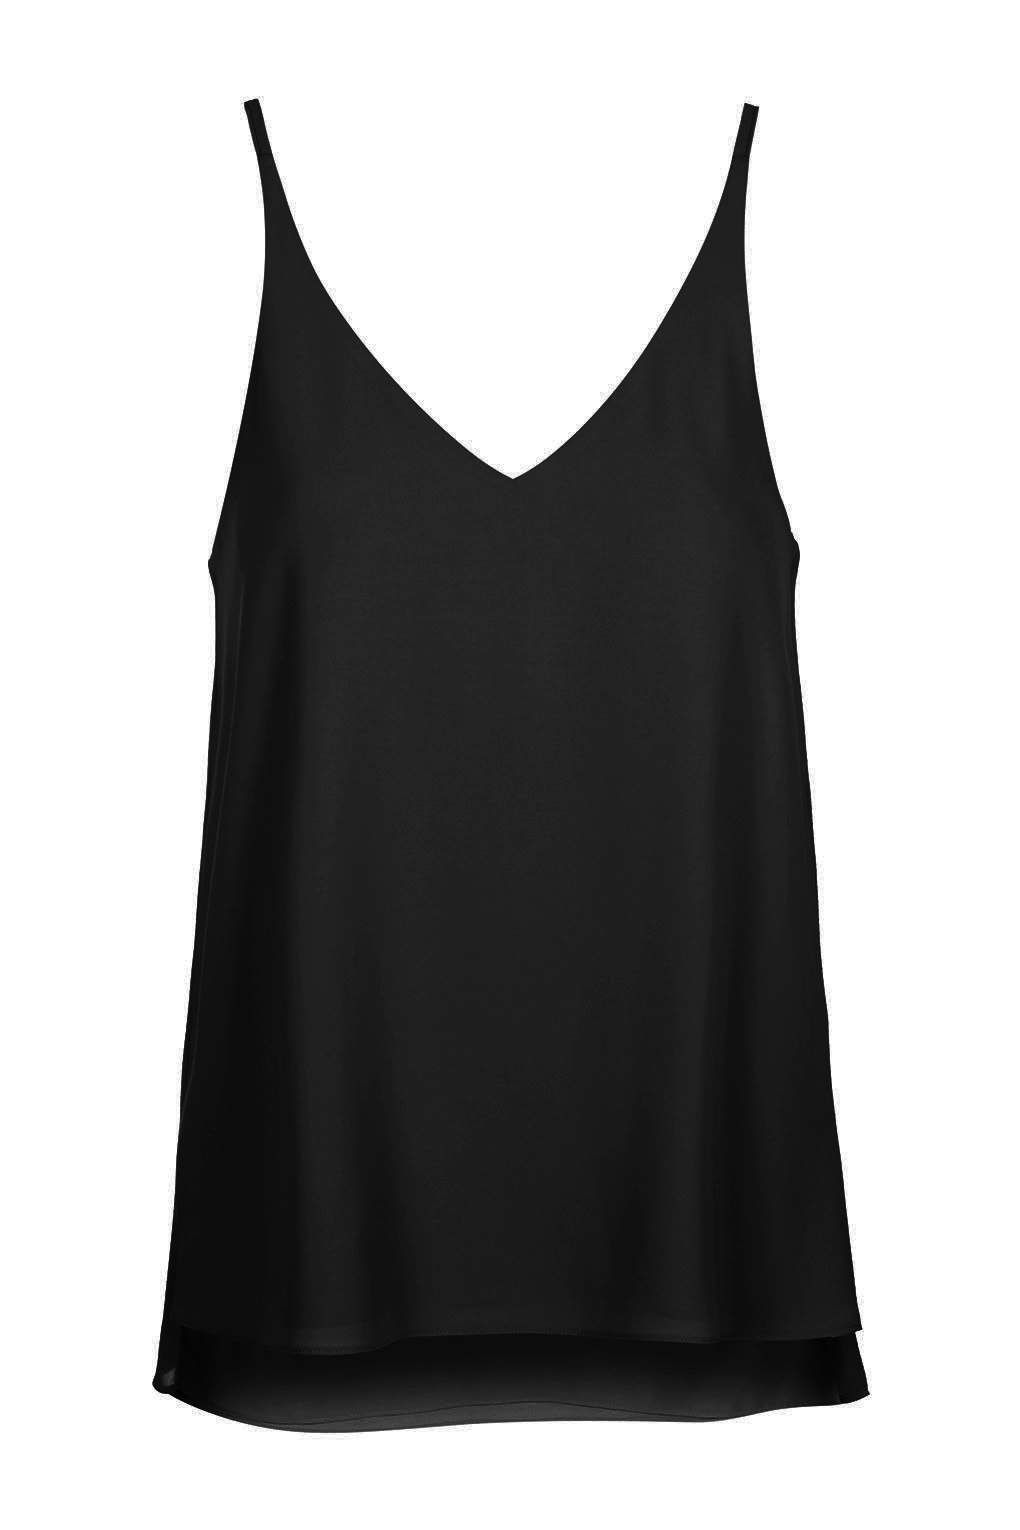 dccf13bb5e446f Perfect basic black tank in a sexy cut to show off your  wearAJD jewels.  Plunge V-Neck Cami by Topshop